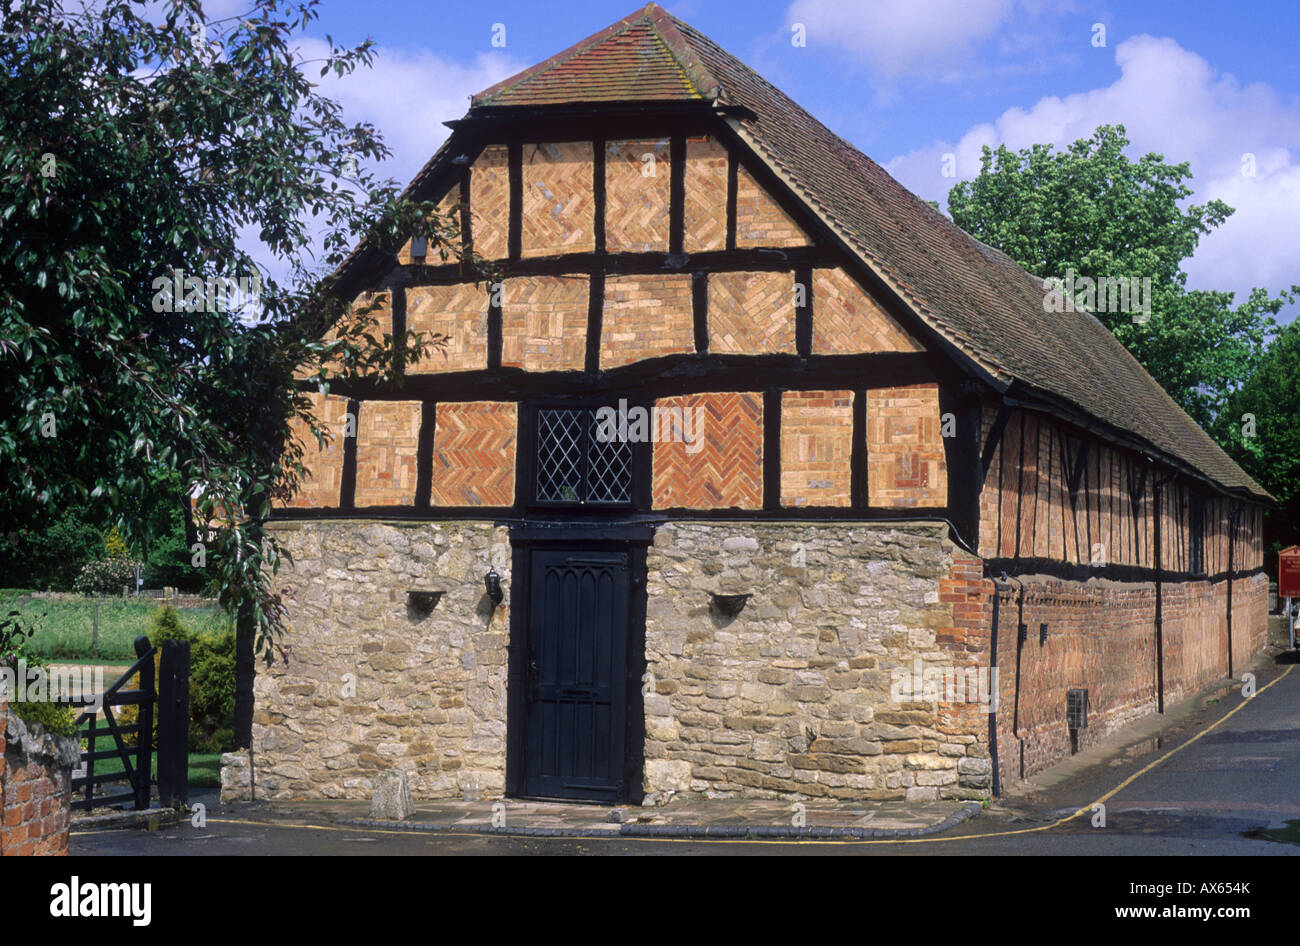 Thame Oxfordshire Medieval Tithe Barn half timbered England UK history English architecture travel tourism - Stock Image